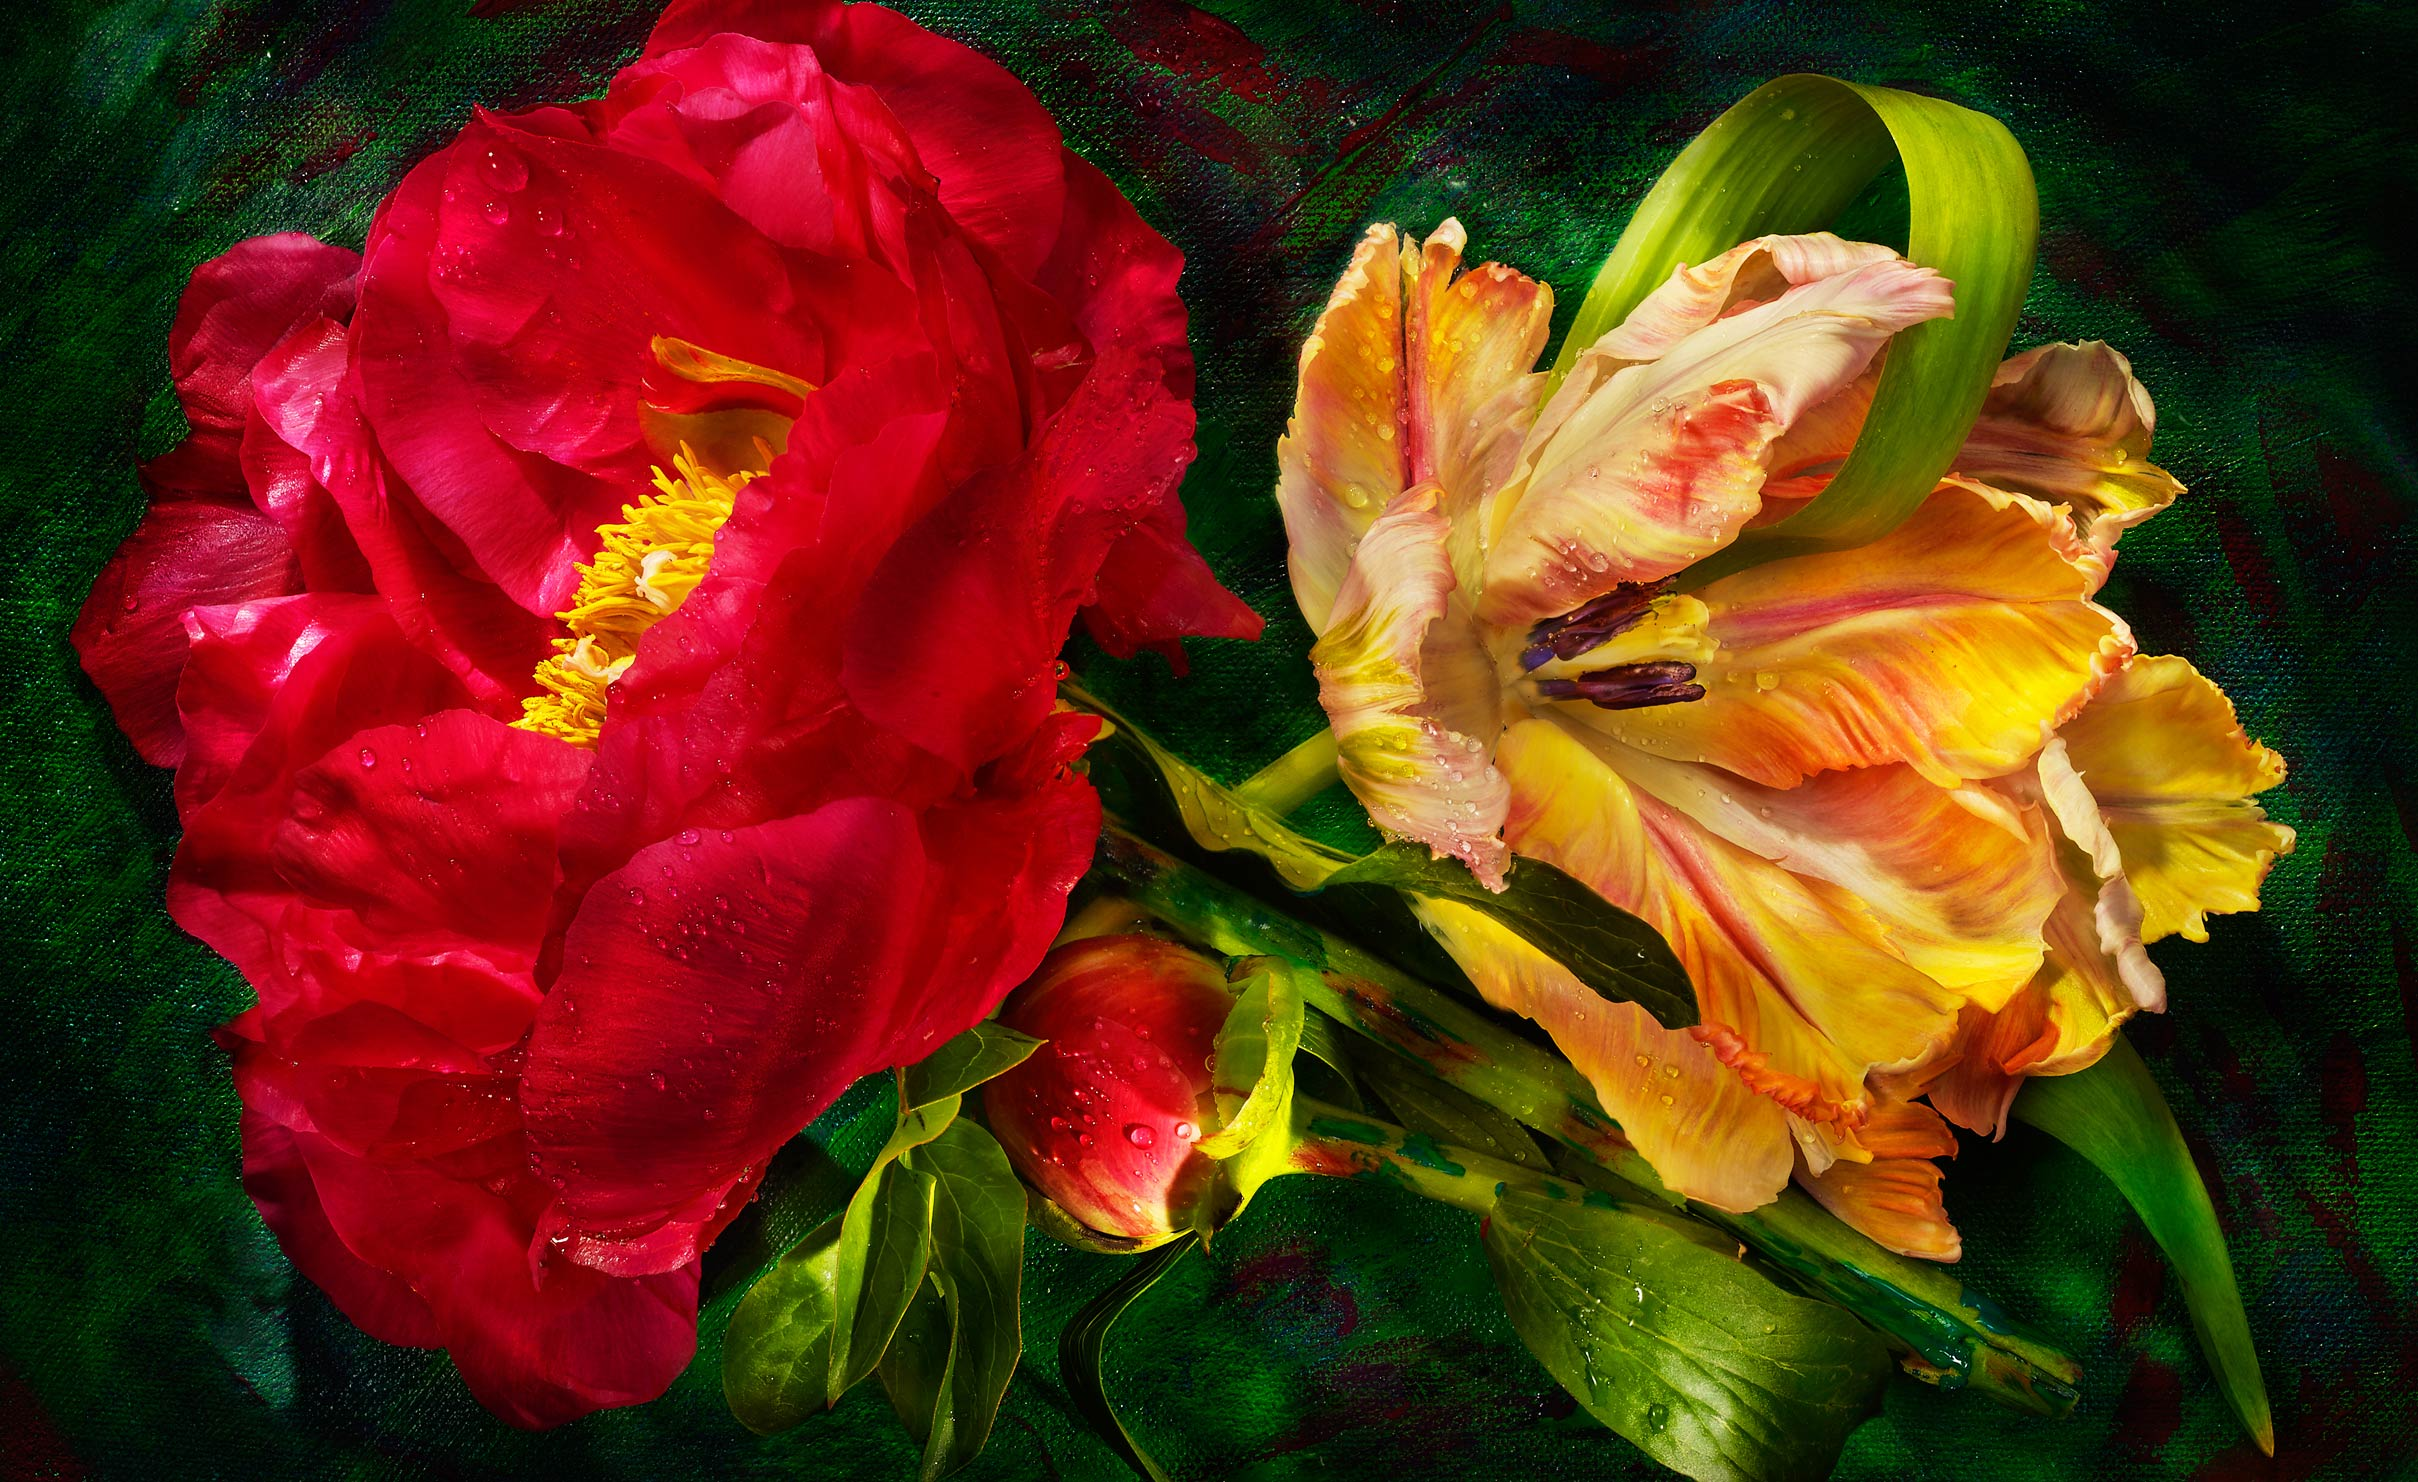 Red and yellow Parrot tulip and peony flowers shot on a painted background